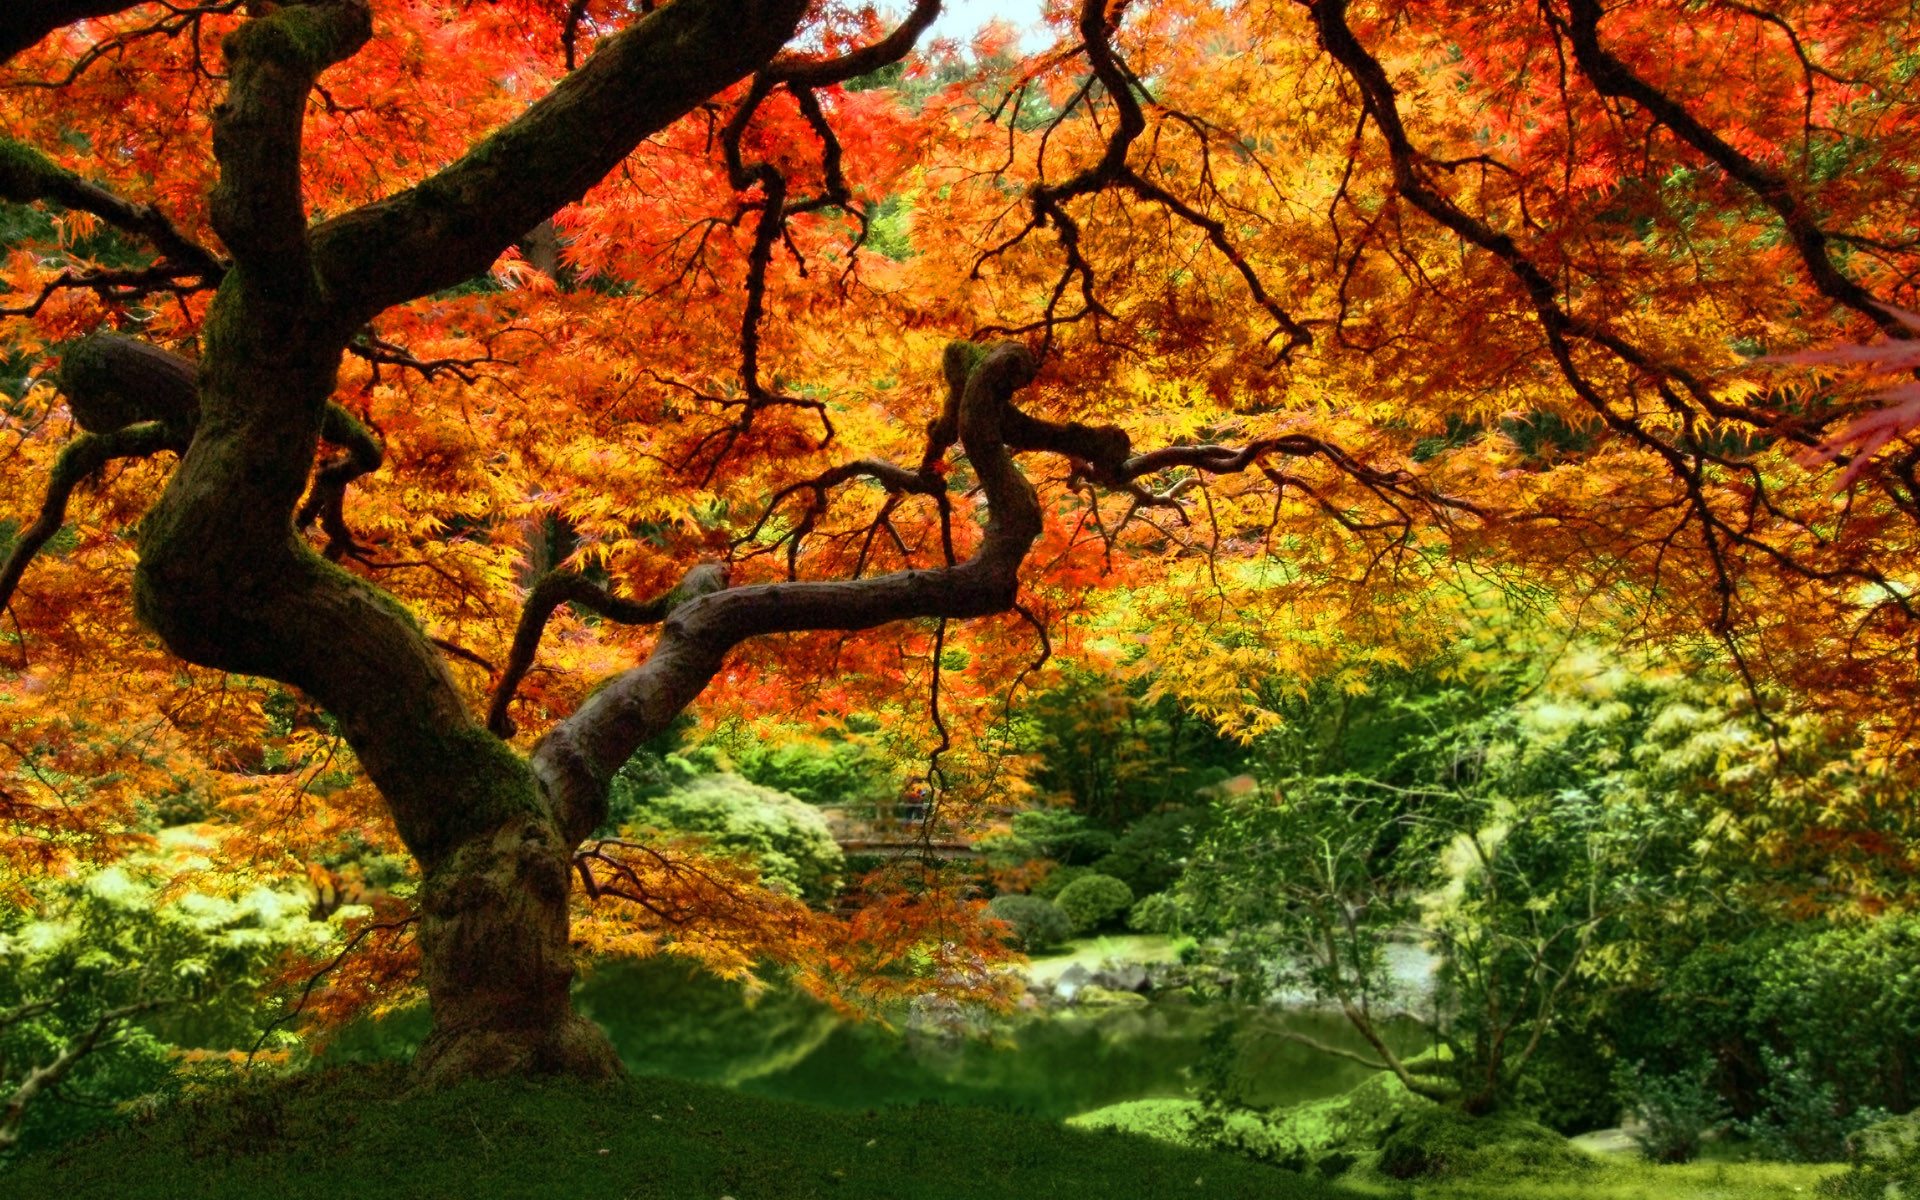 Autumn Leaves Pictures Fall Foliage | autumn leaves forest trees Windows  Vista Autumn Leaves Wallpaper .